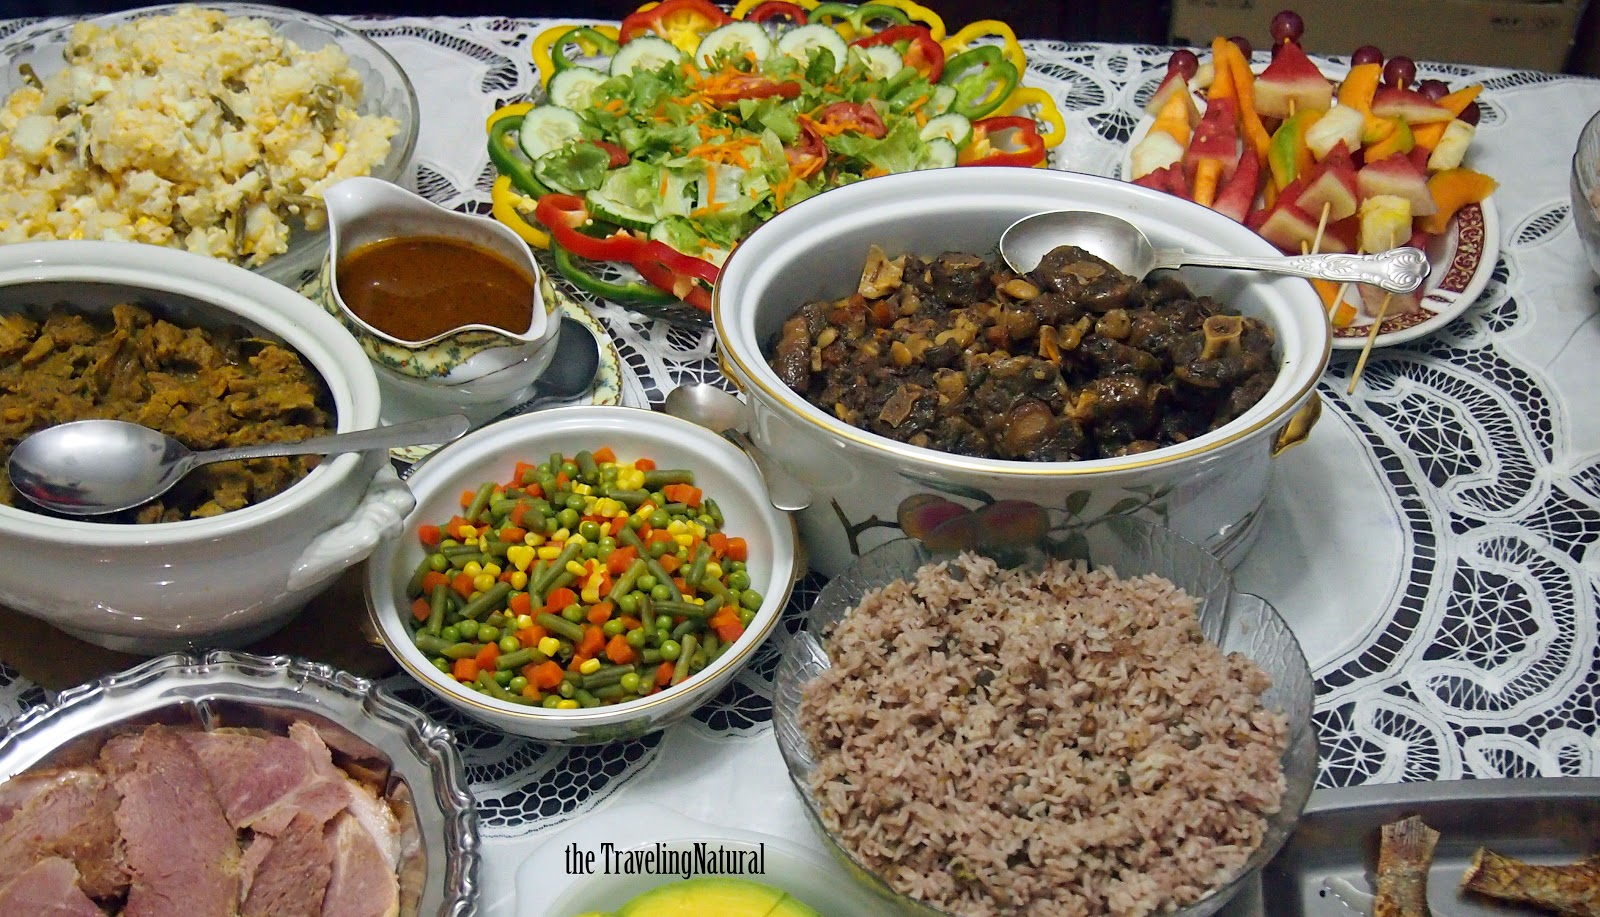 Christmas Lunch Ideas Cold Food